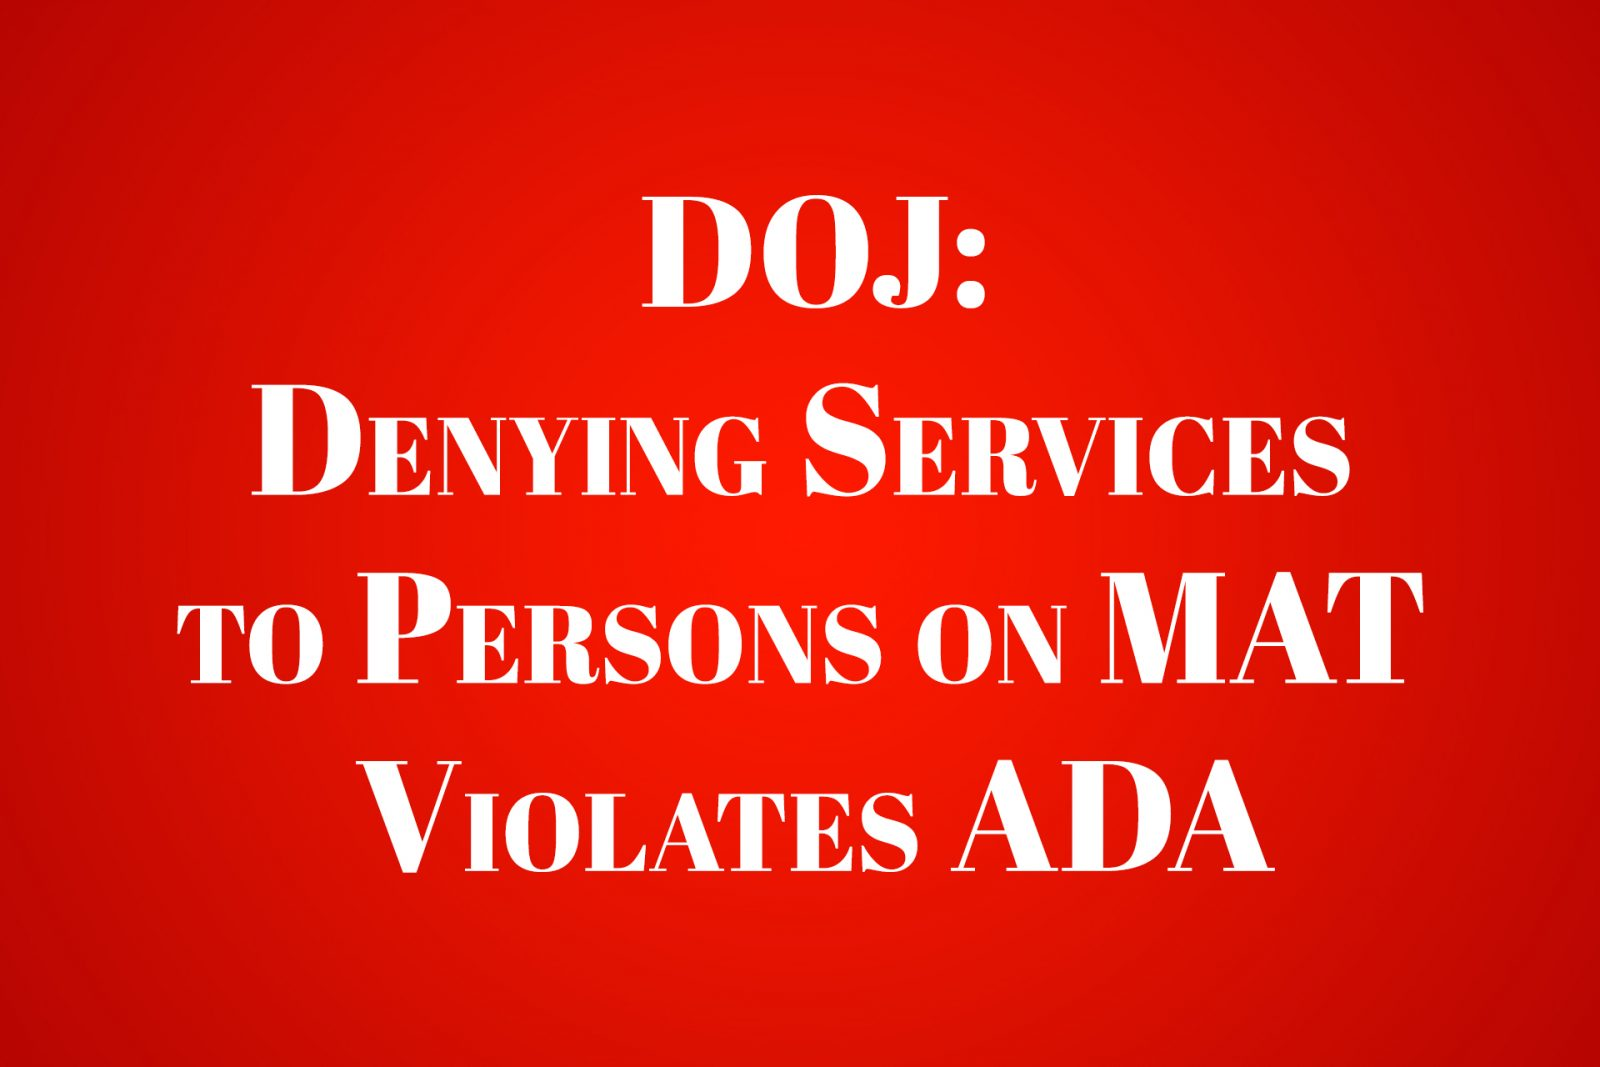 DOJ: Denying Services to Persons on MAT Violates ADA